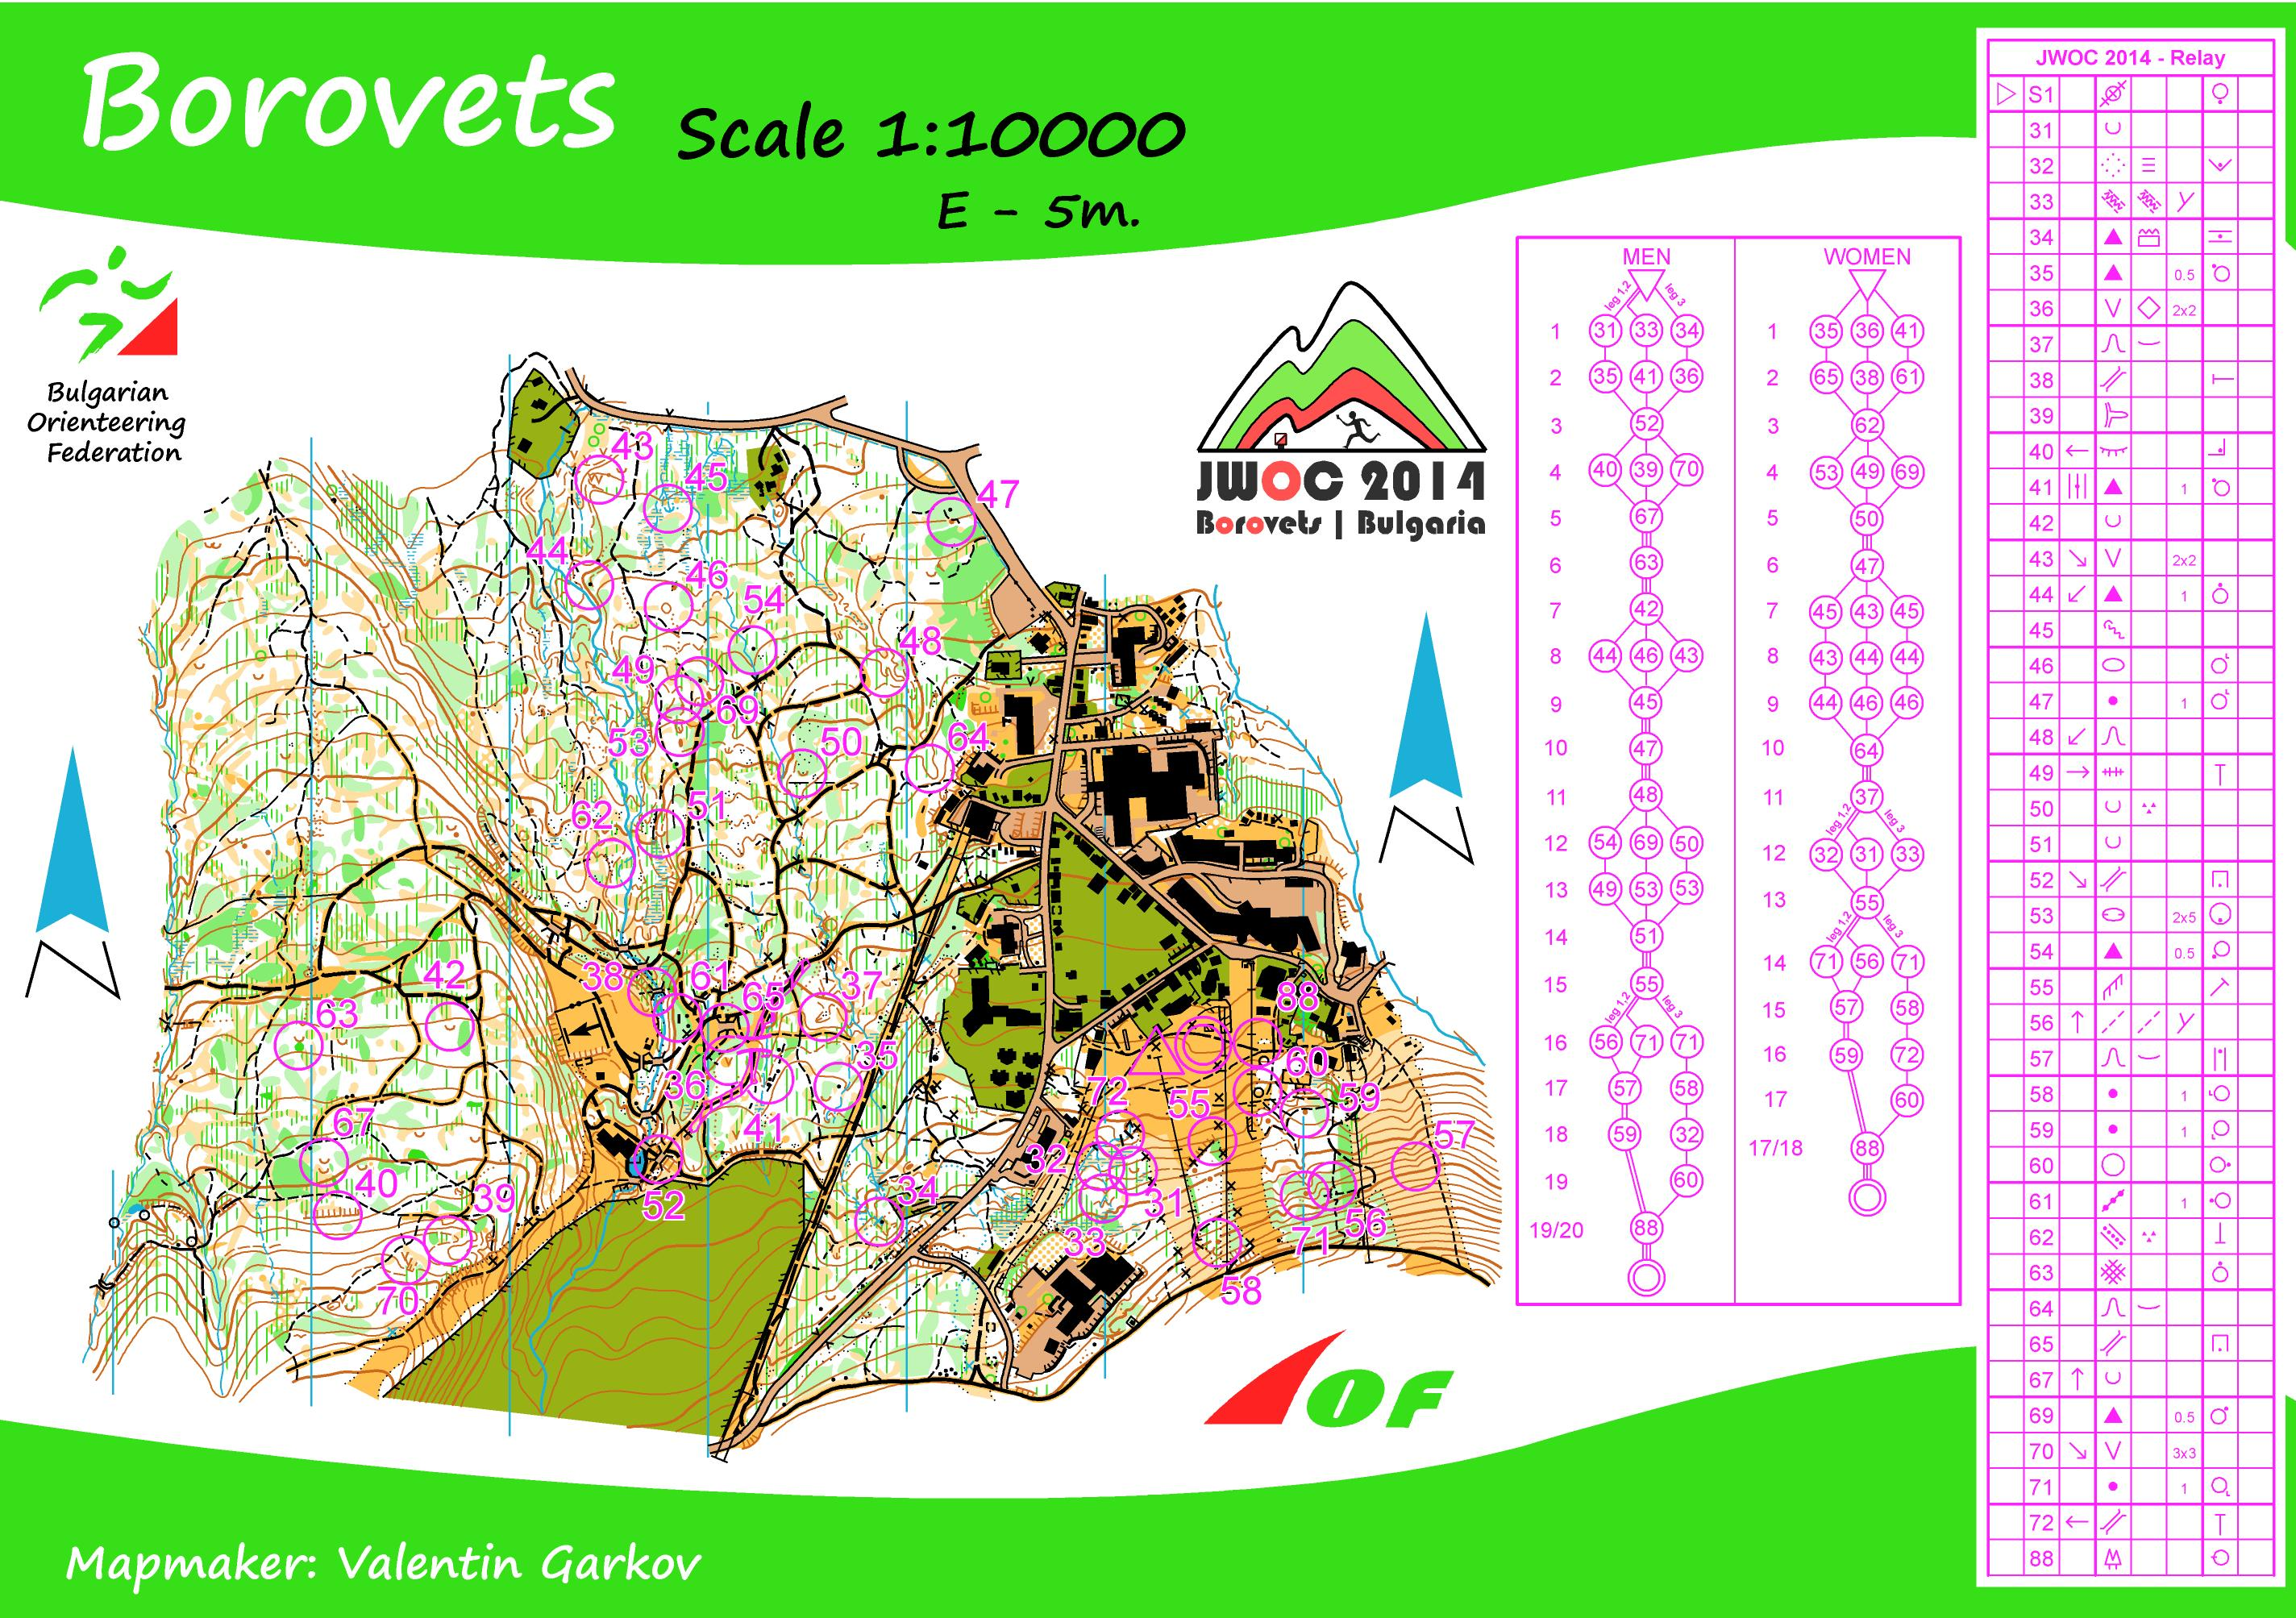 JWOC Maps Results And Medal Overview World Of O News - Norway map 2014